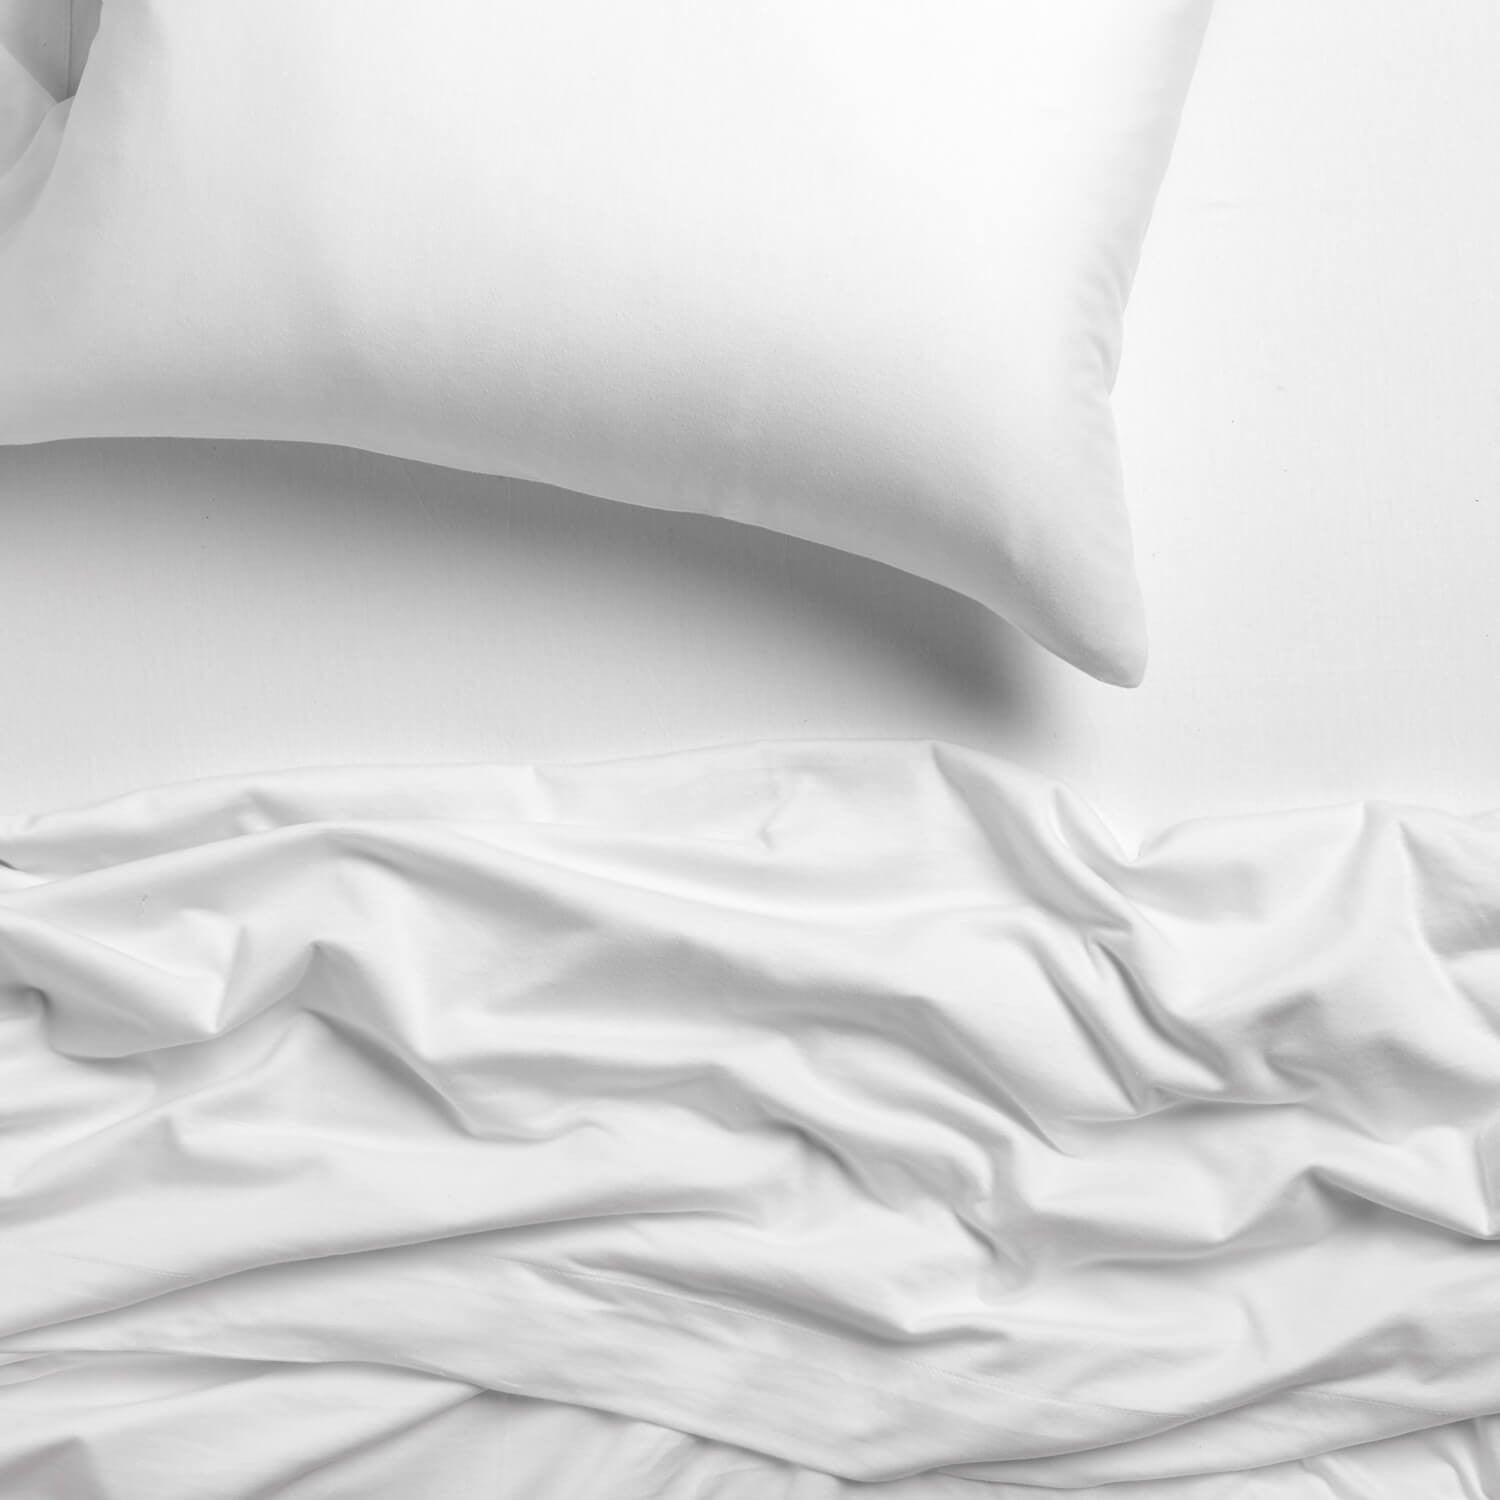 Deluxe Soft Tee Jersey Sheet Set - Bright White Twin/Twin XL